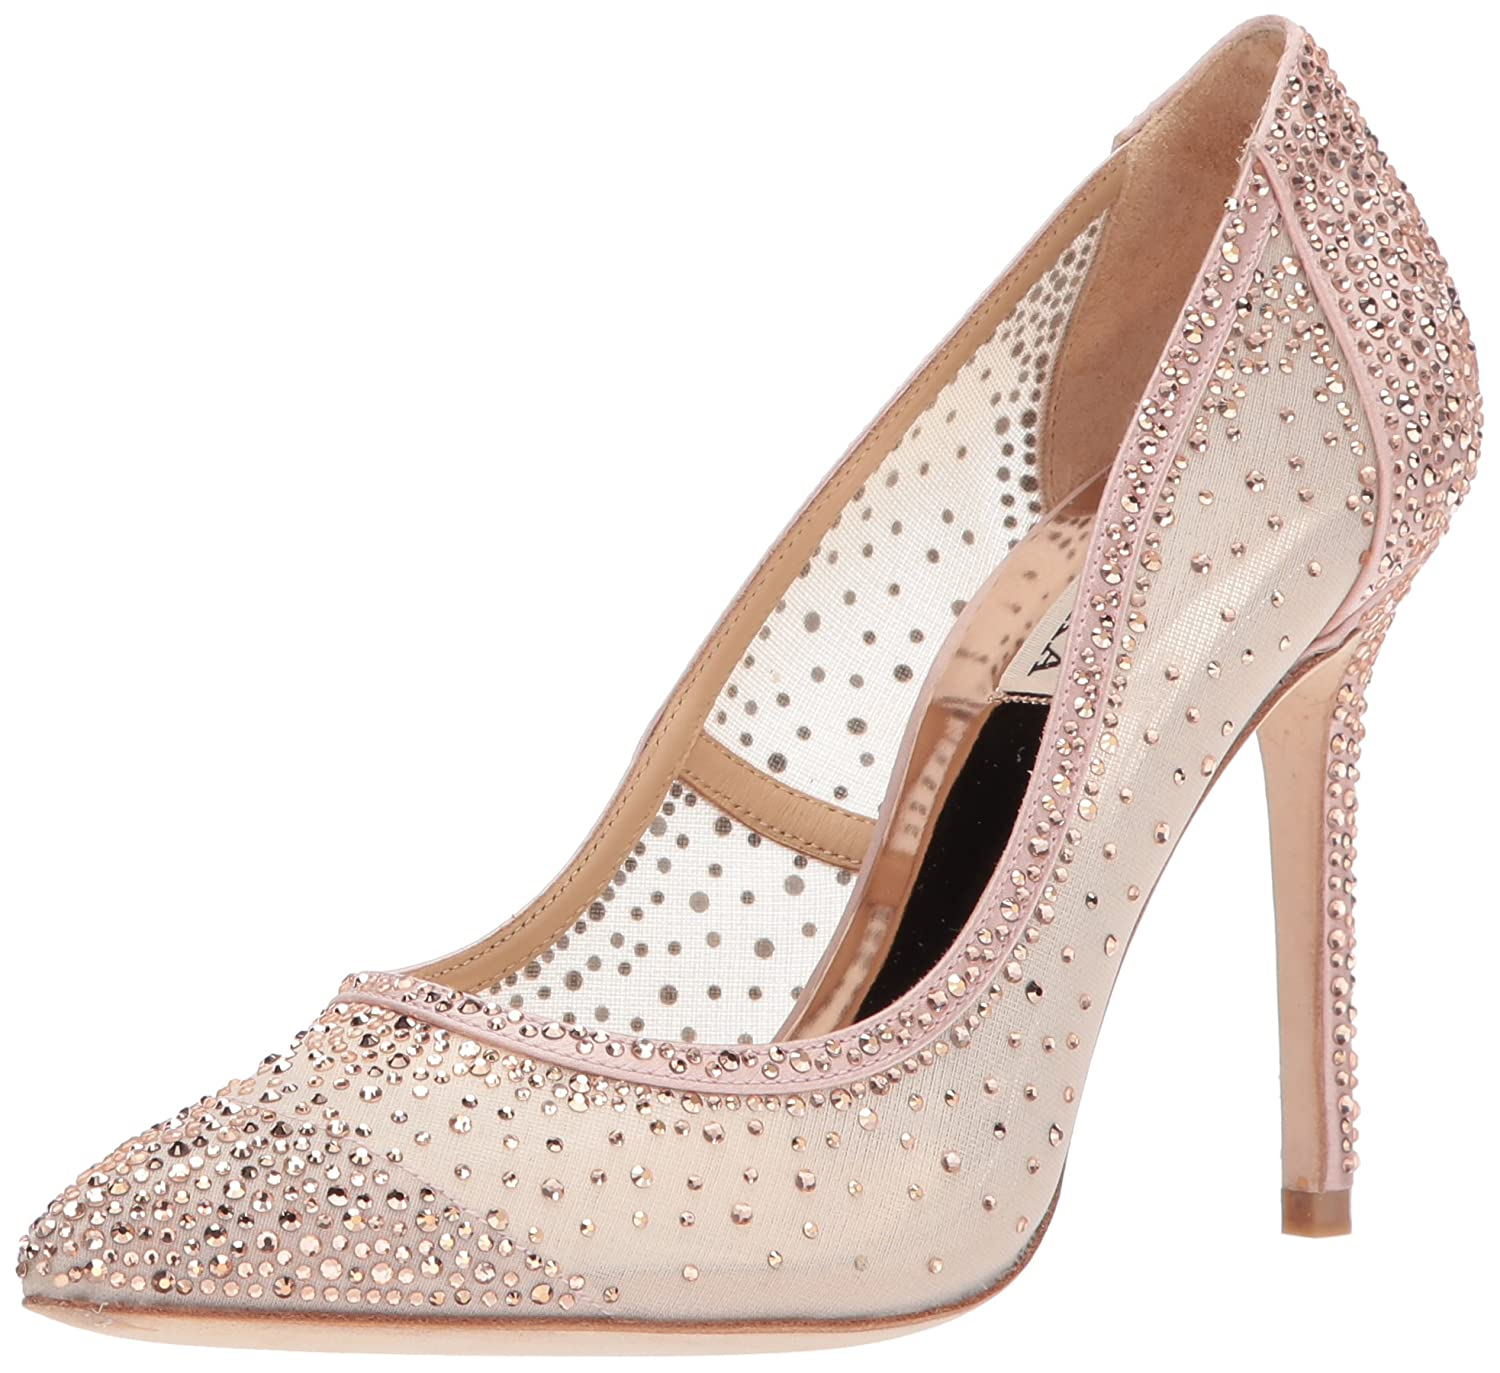 Badgley Mischka Women's Weslee Pump B073CZ64VX 6.5 B(M) US|Blush